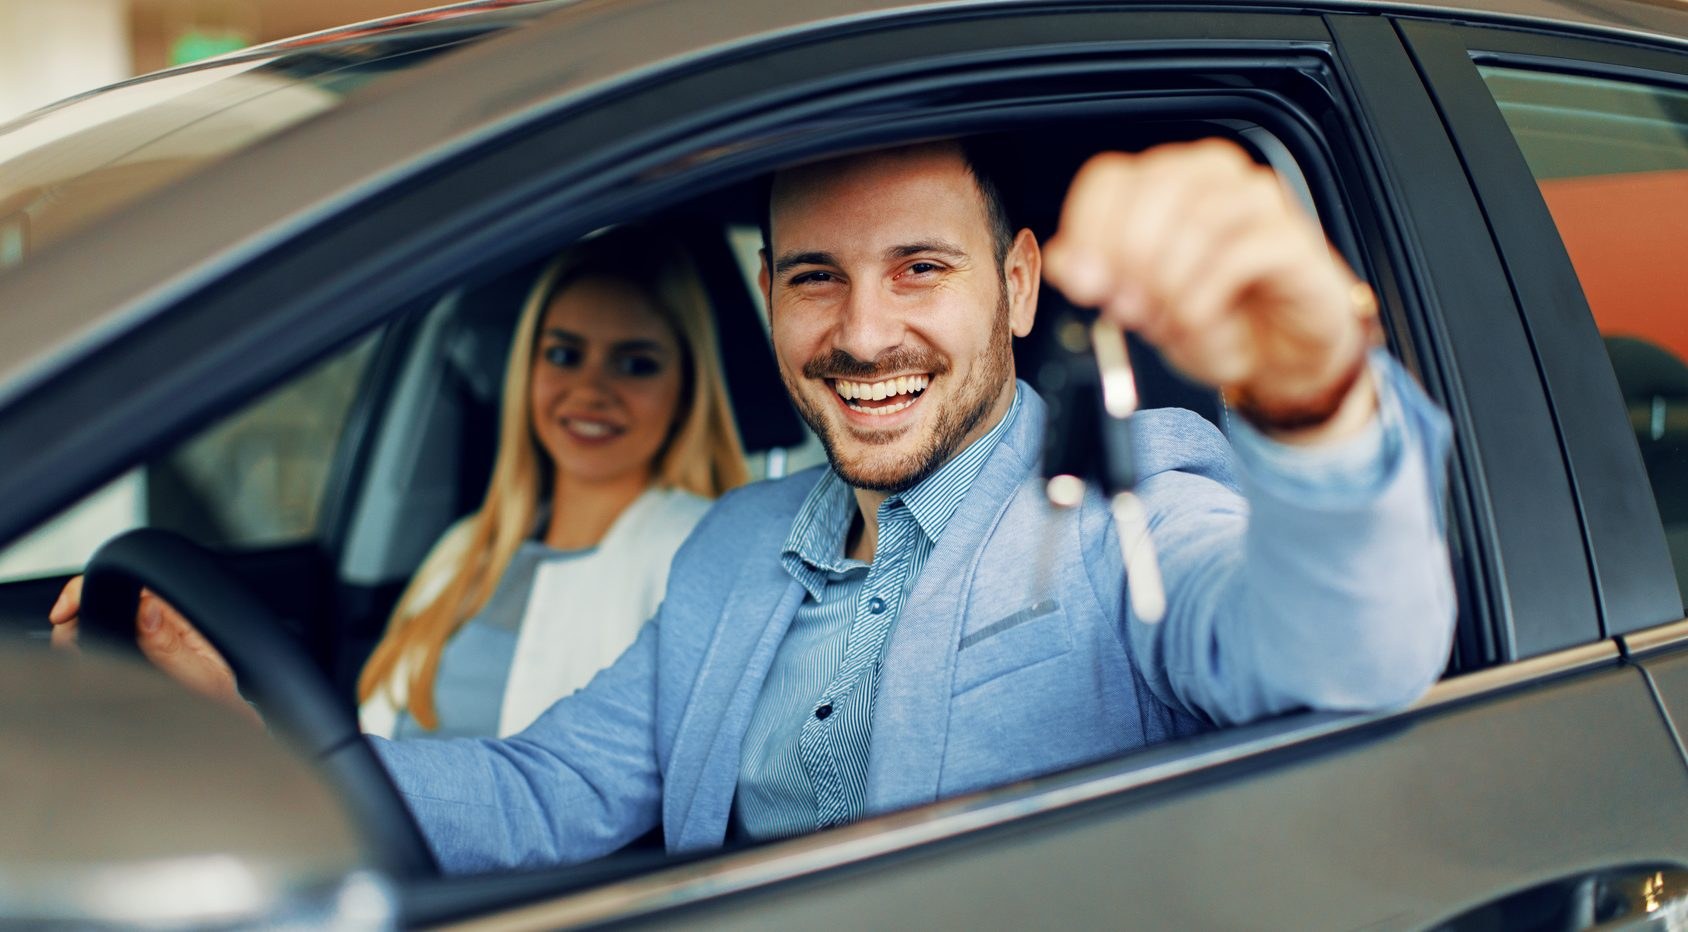 Taxi or car rental - what is profitable?